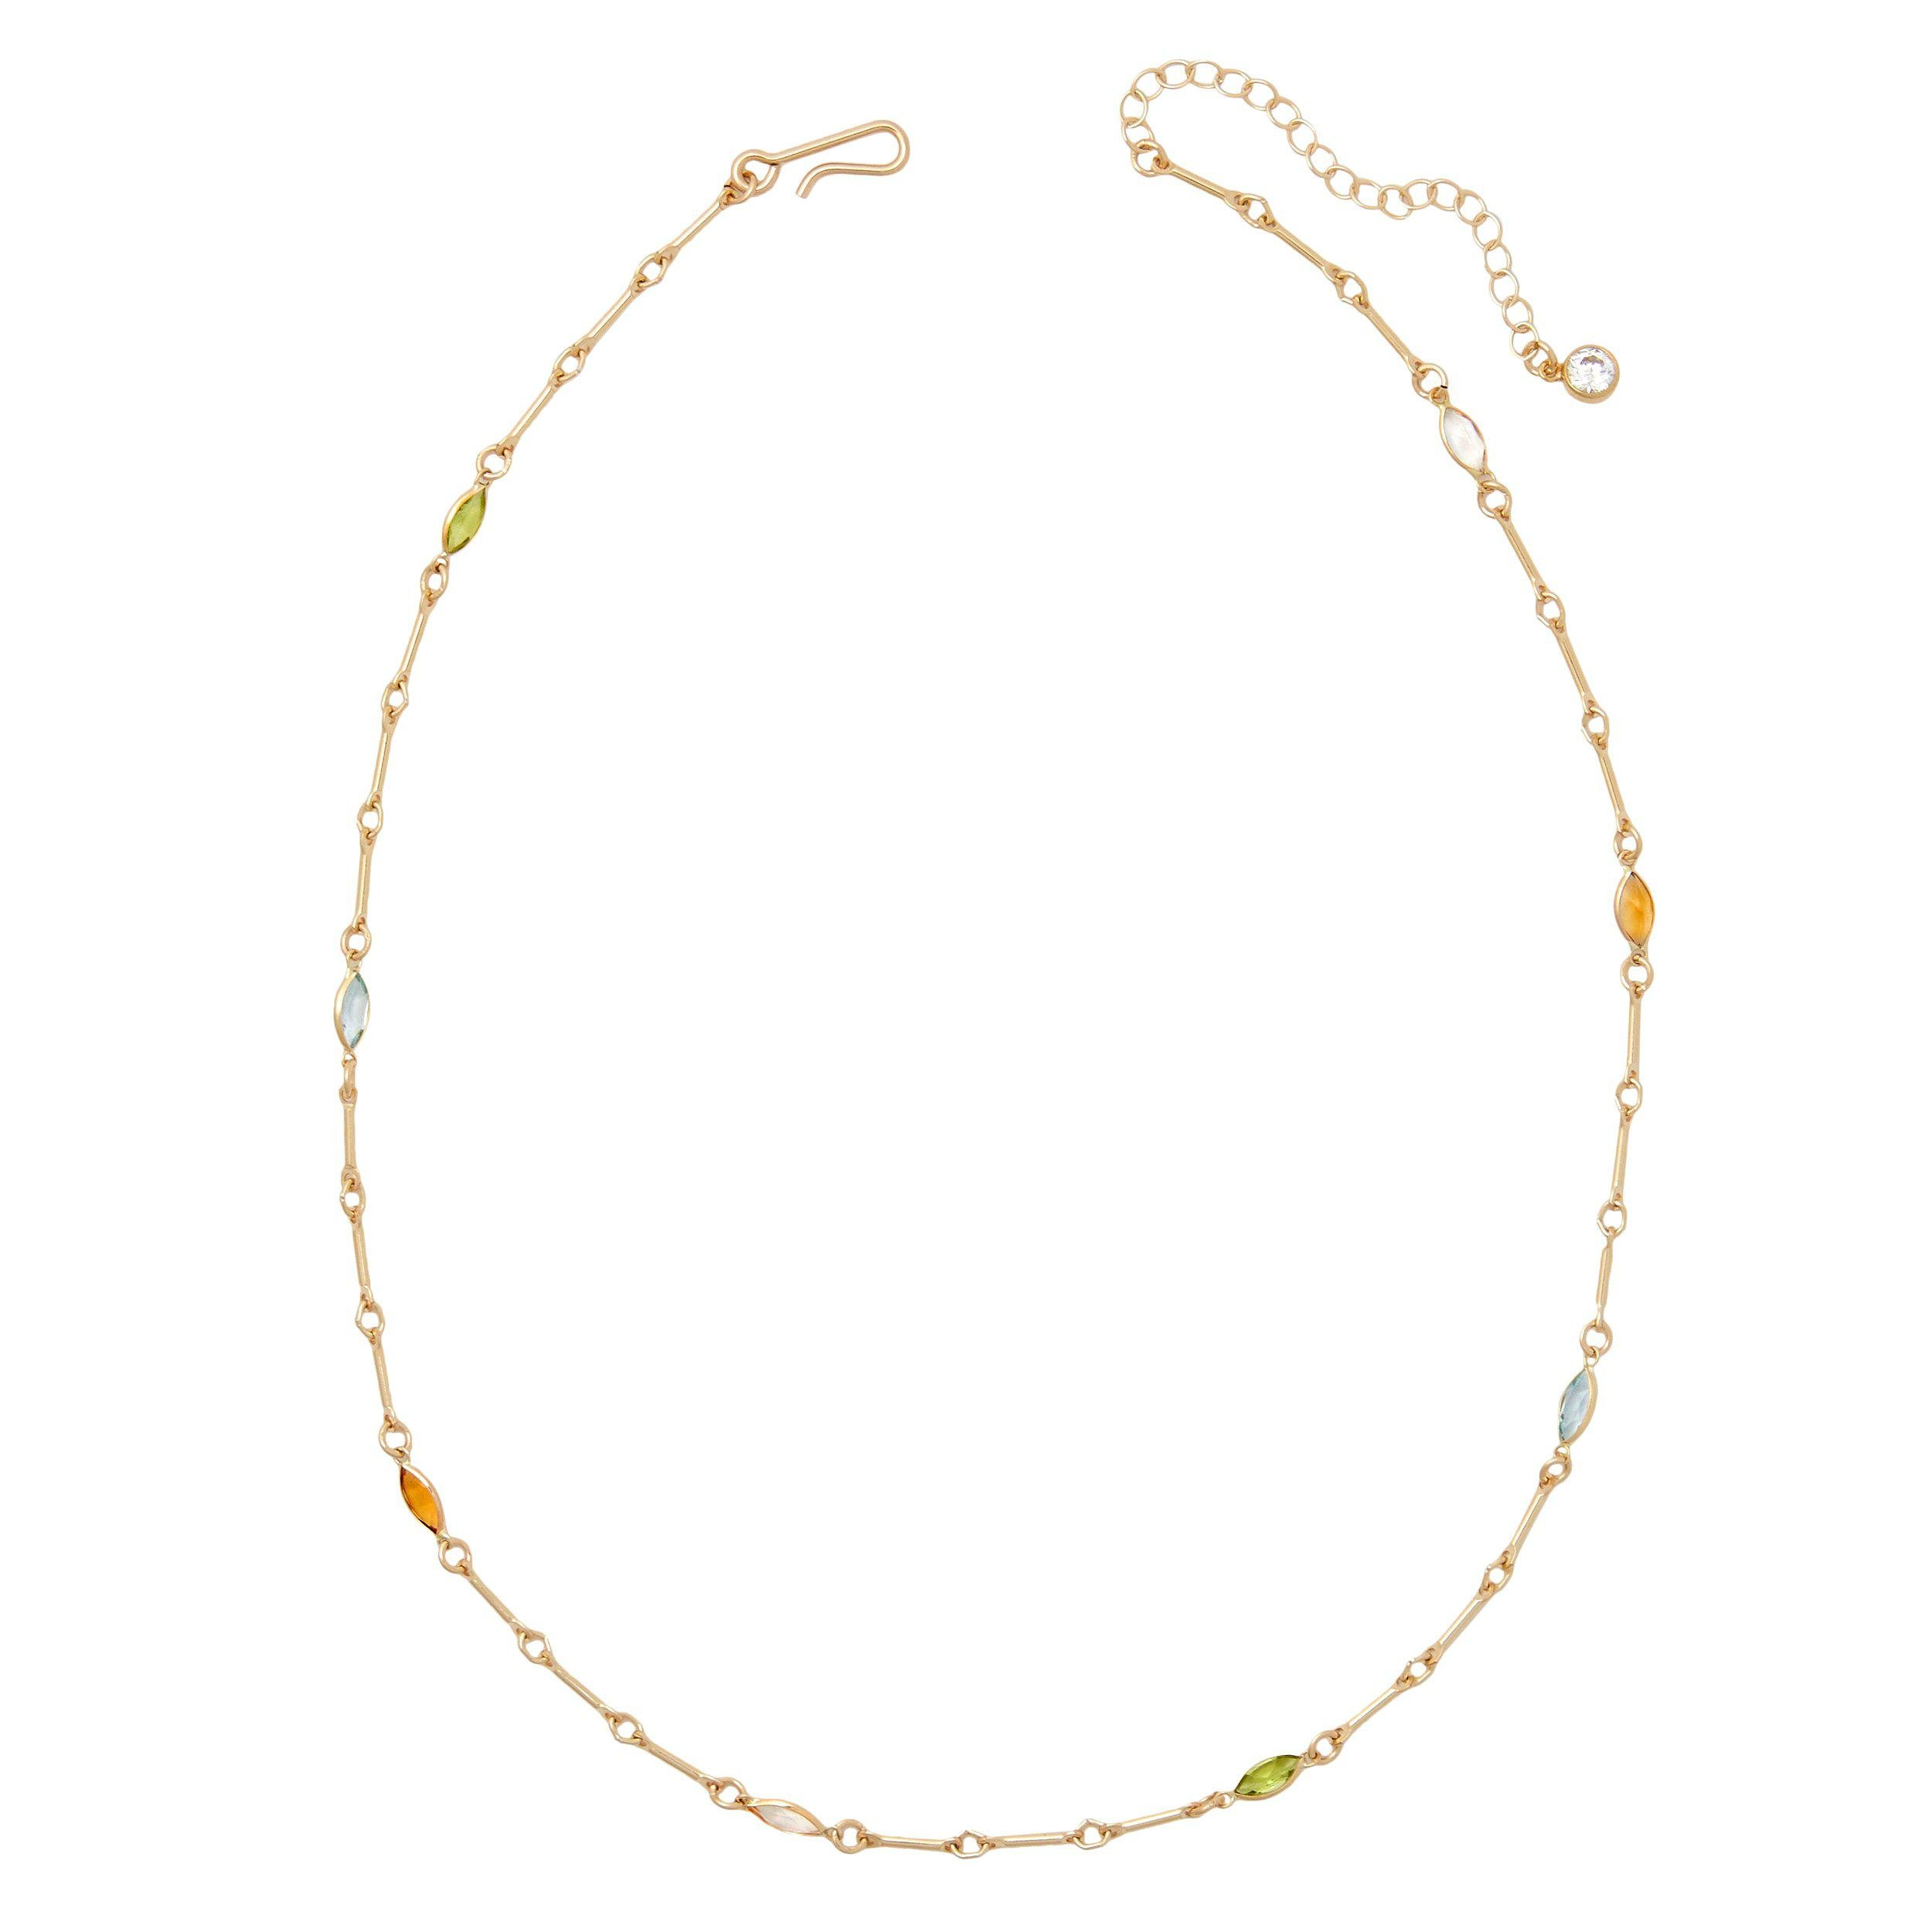 Flair Necklace